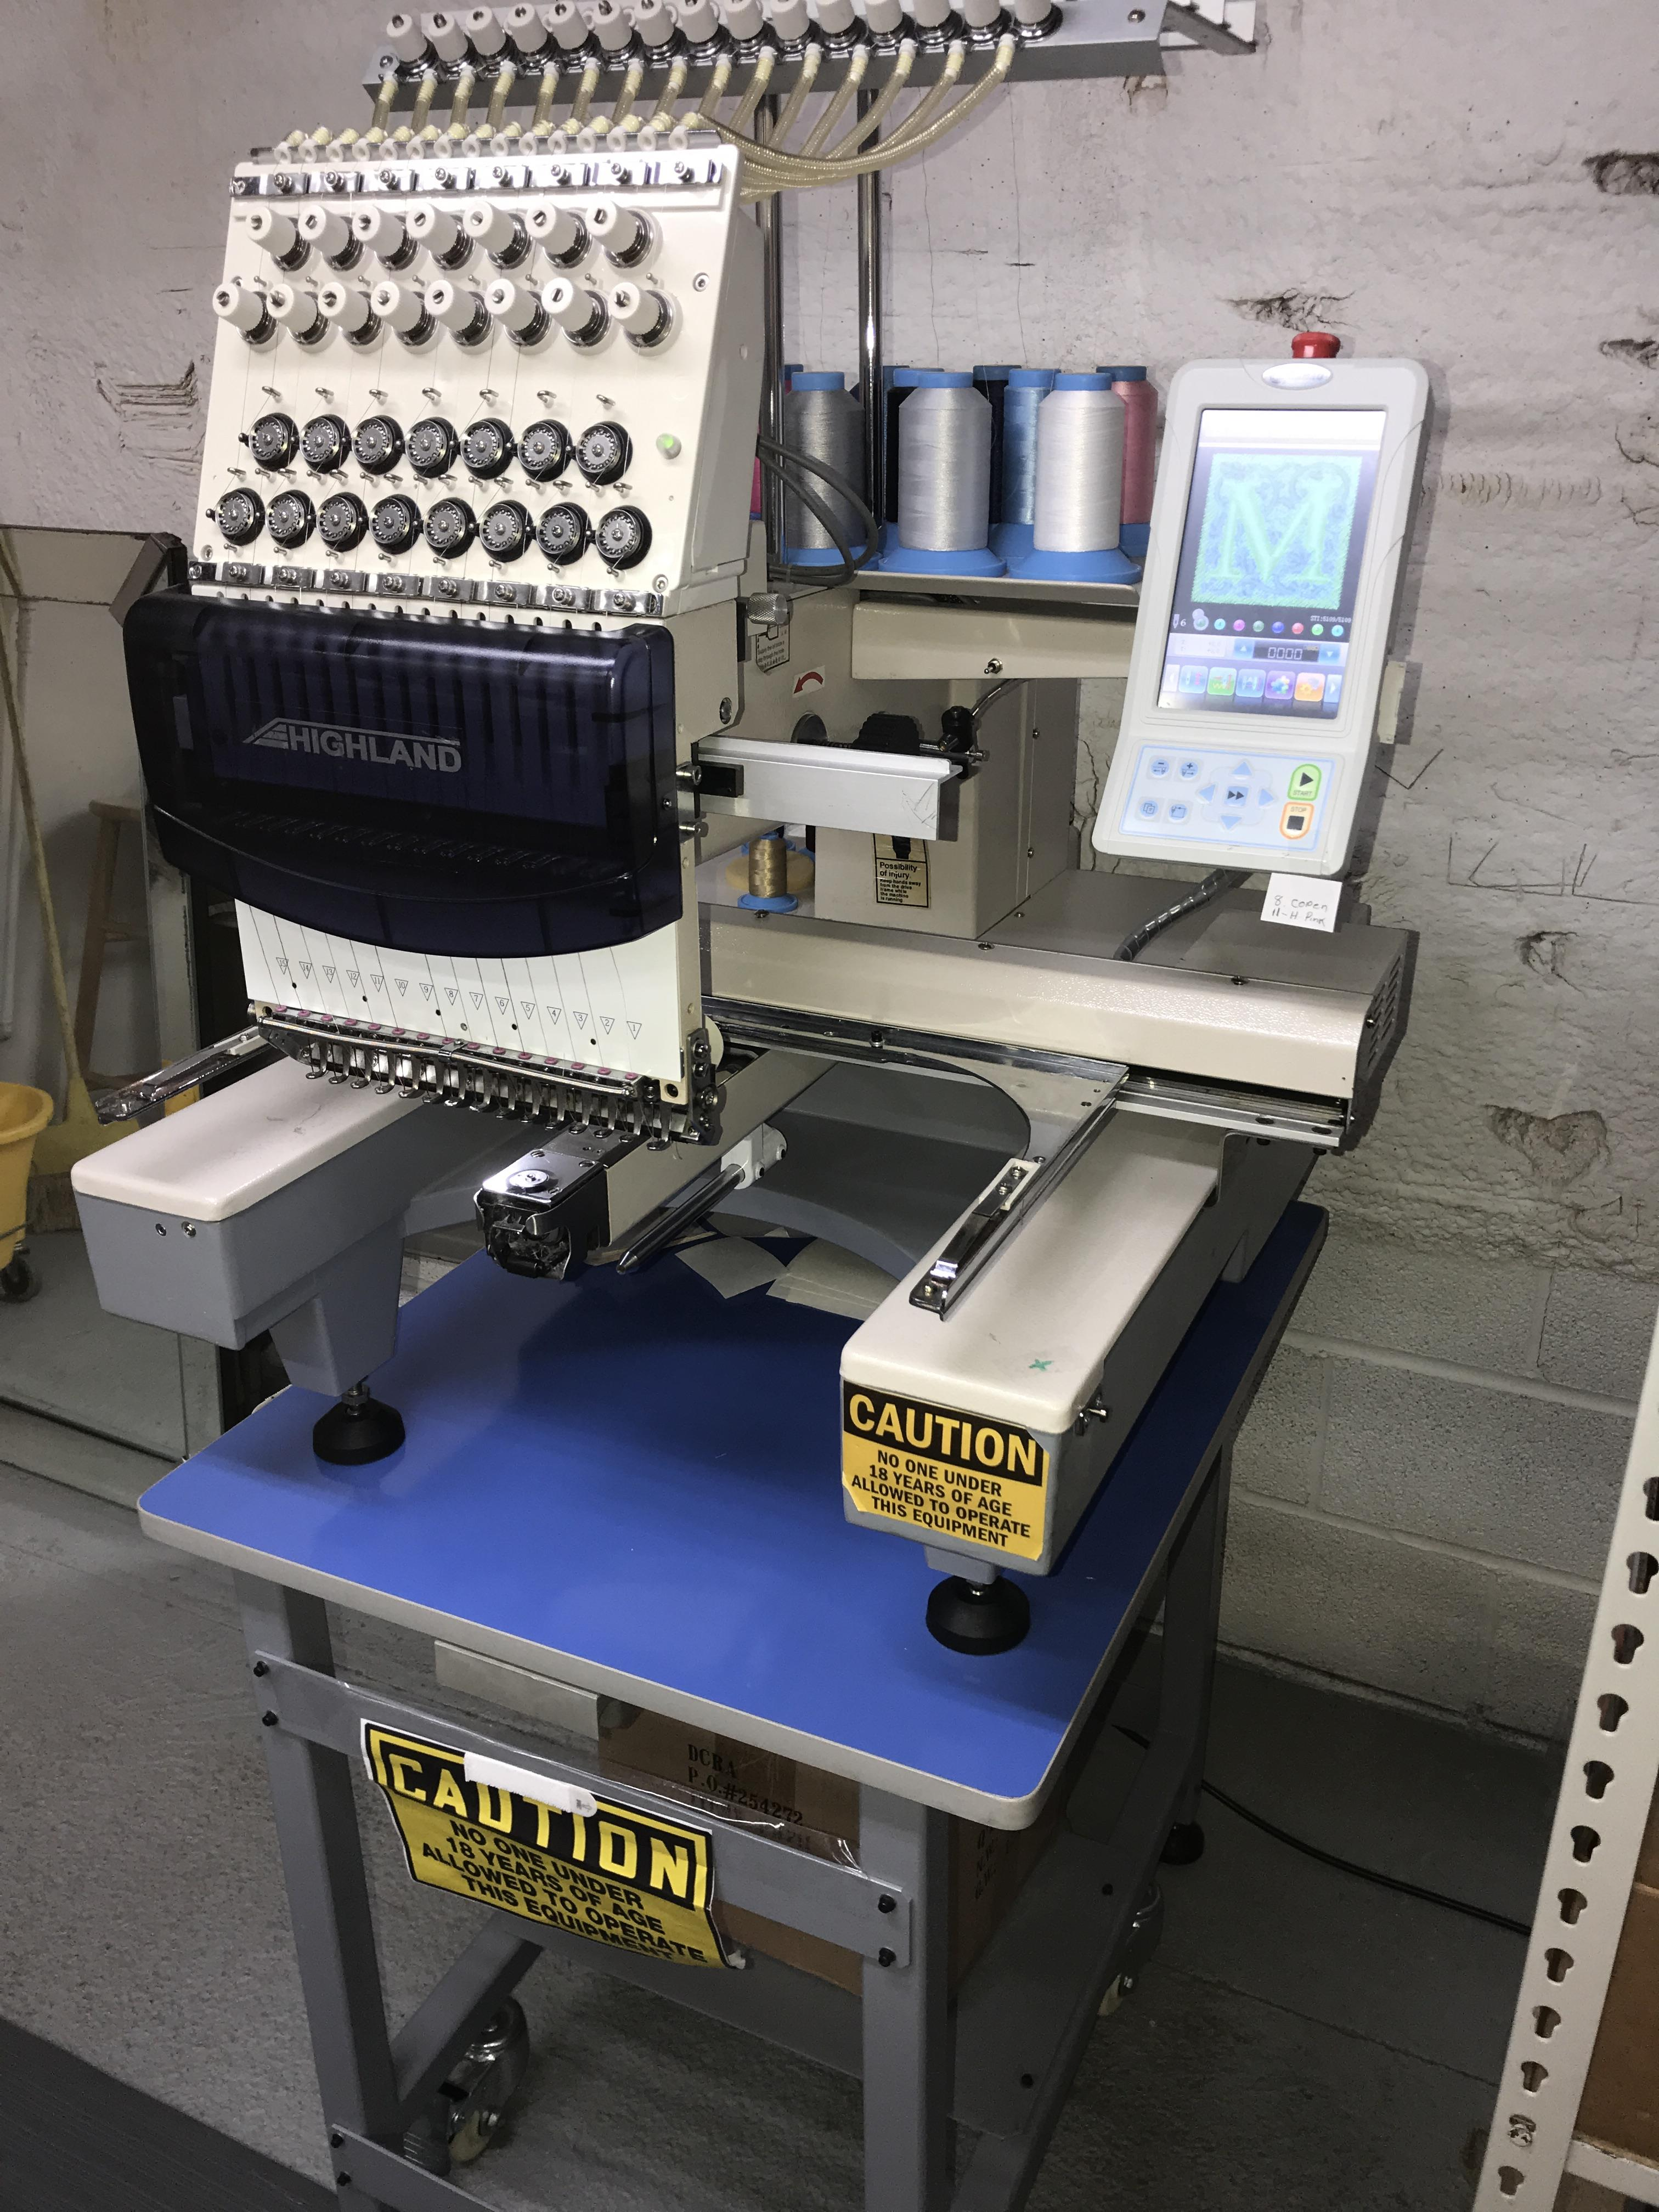 Used Embroidery Machines >> Highland Used Single Head Embroidery Machine For Sale